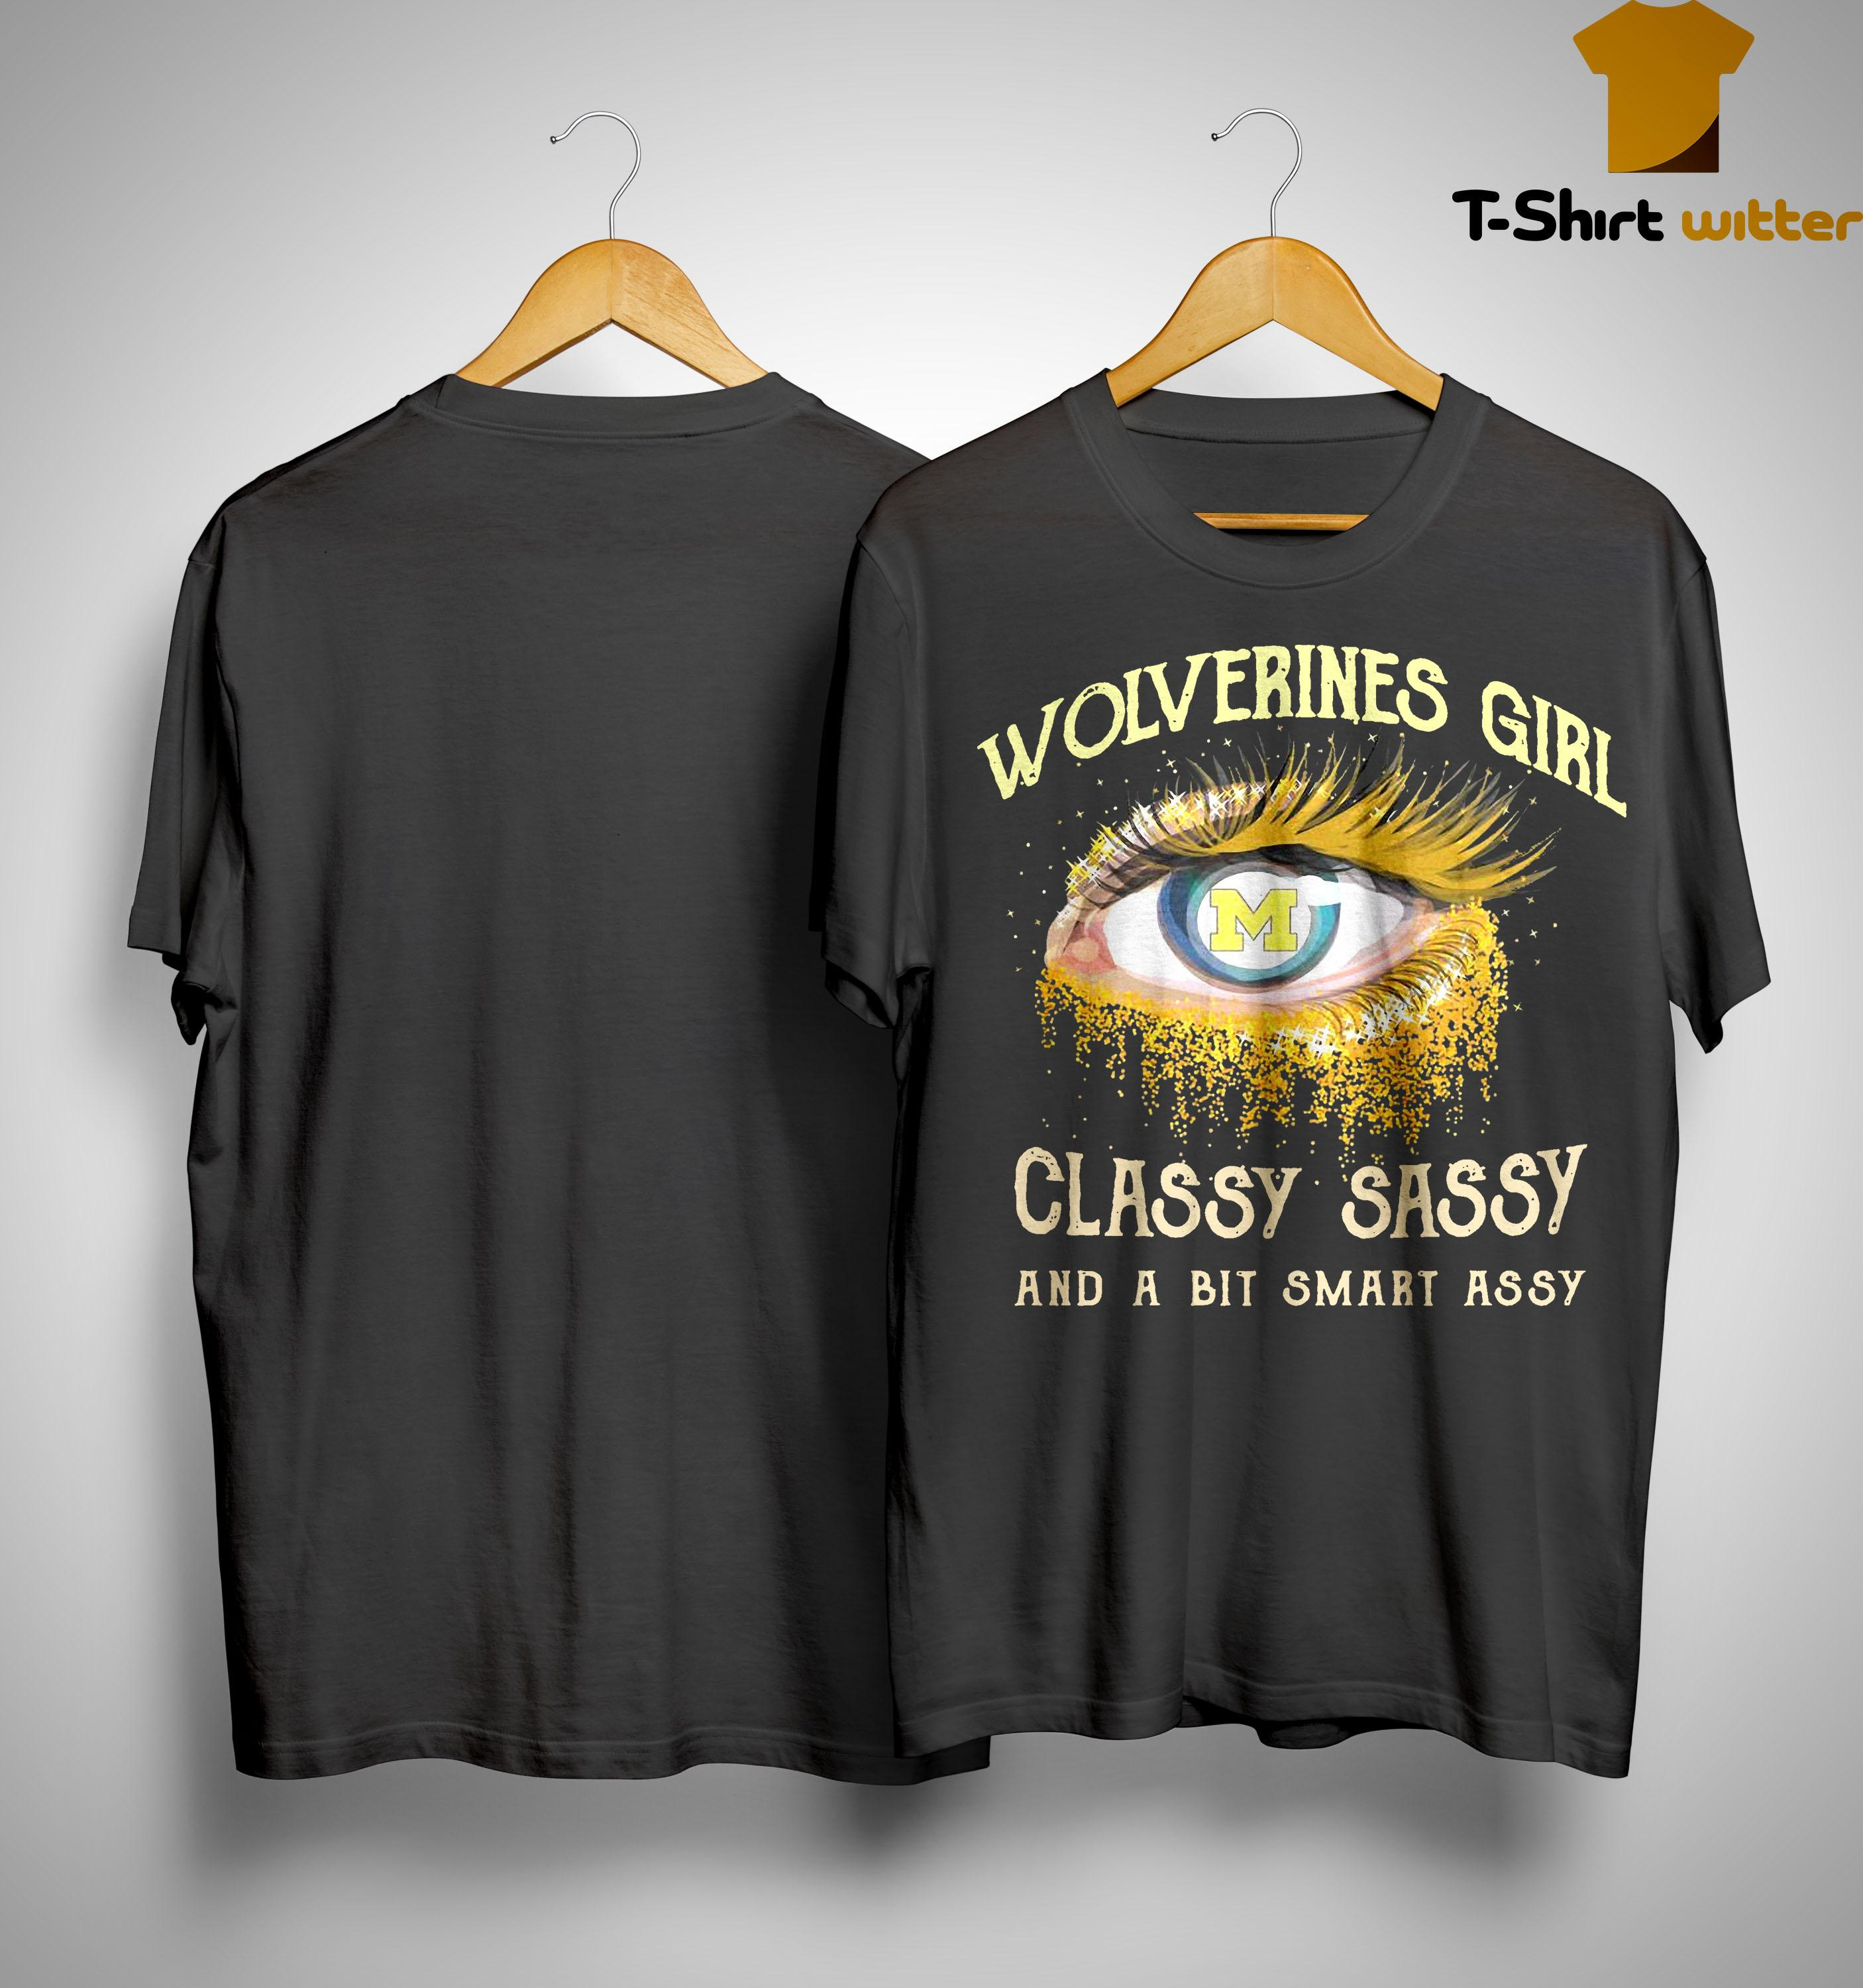 Wolverines Girl Classy Sassy And A Bit Smart Assy Shirt